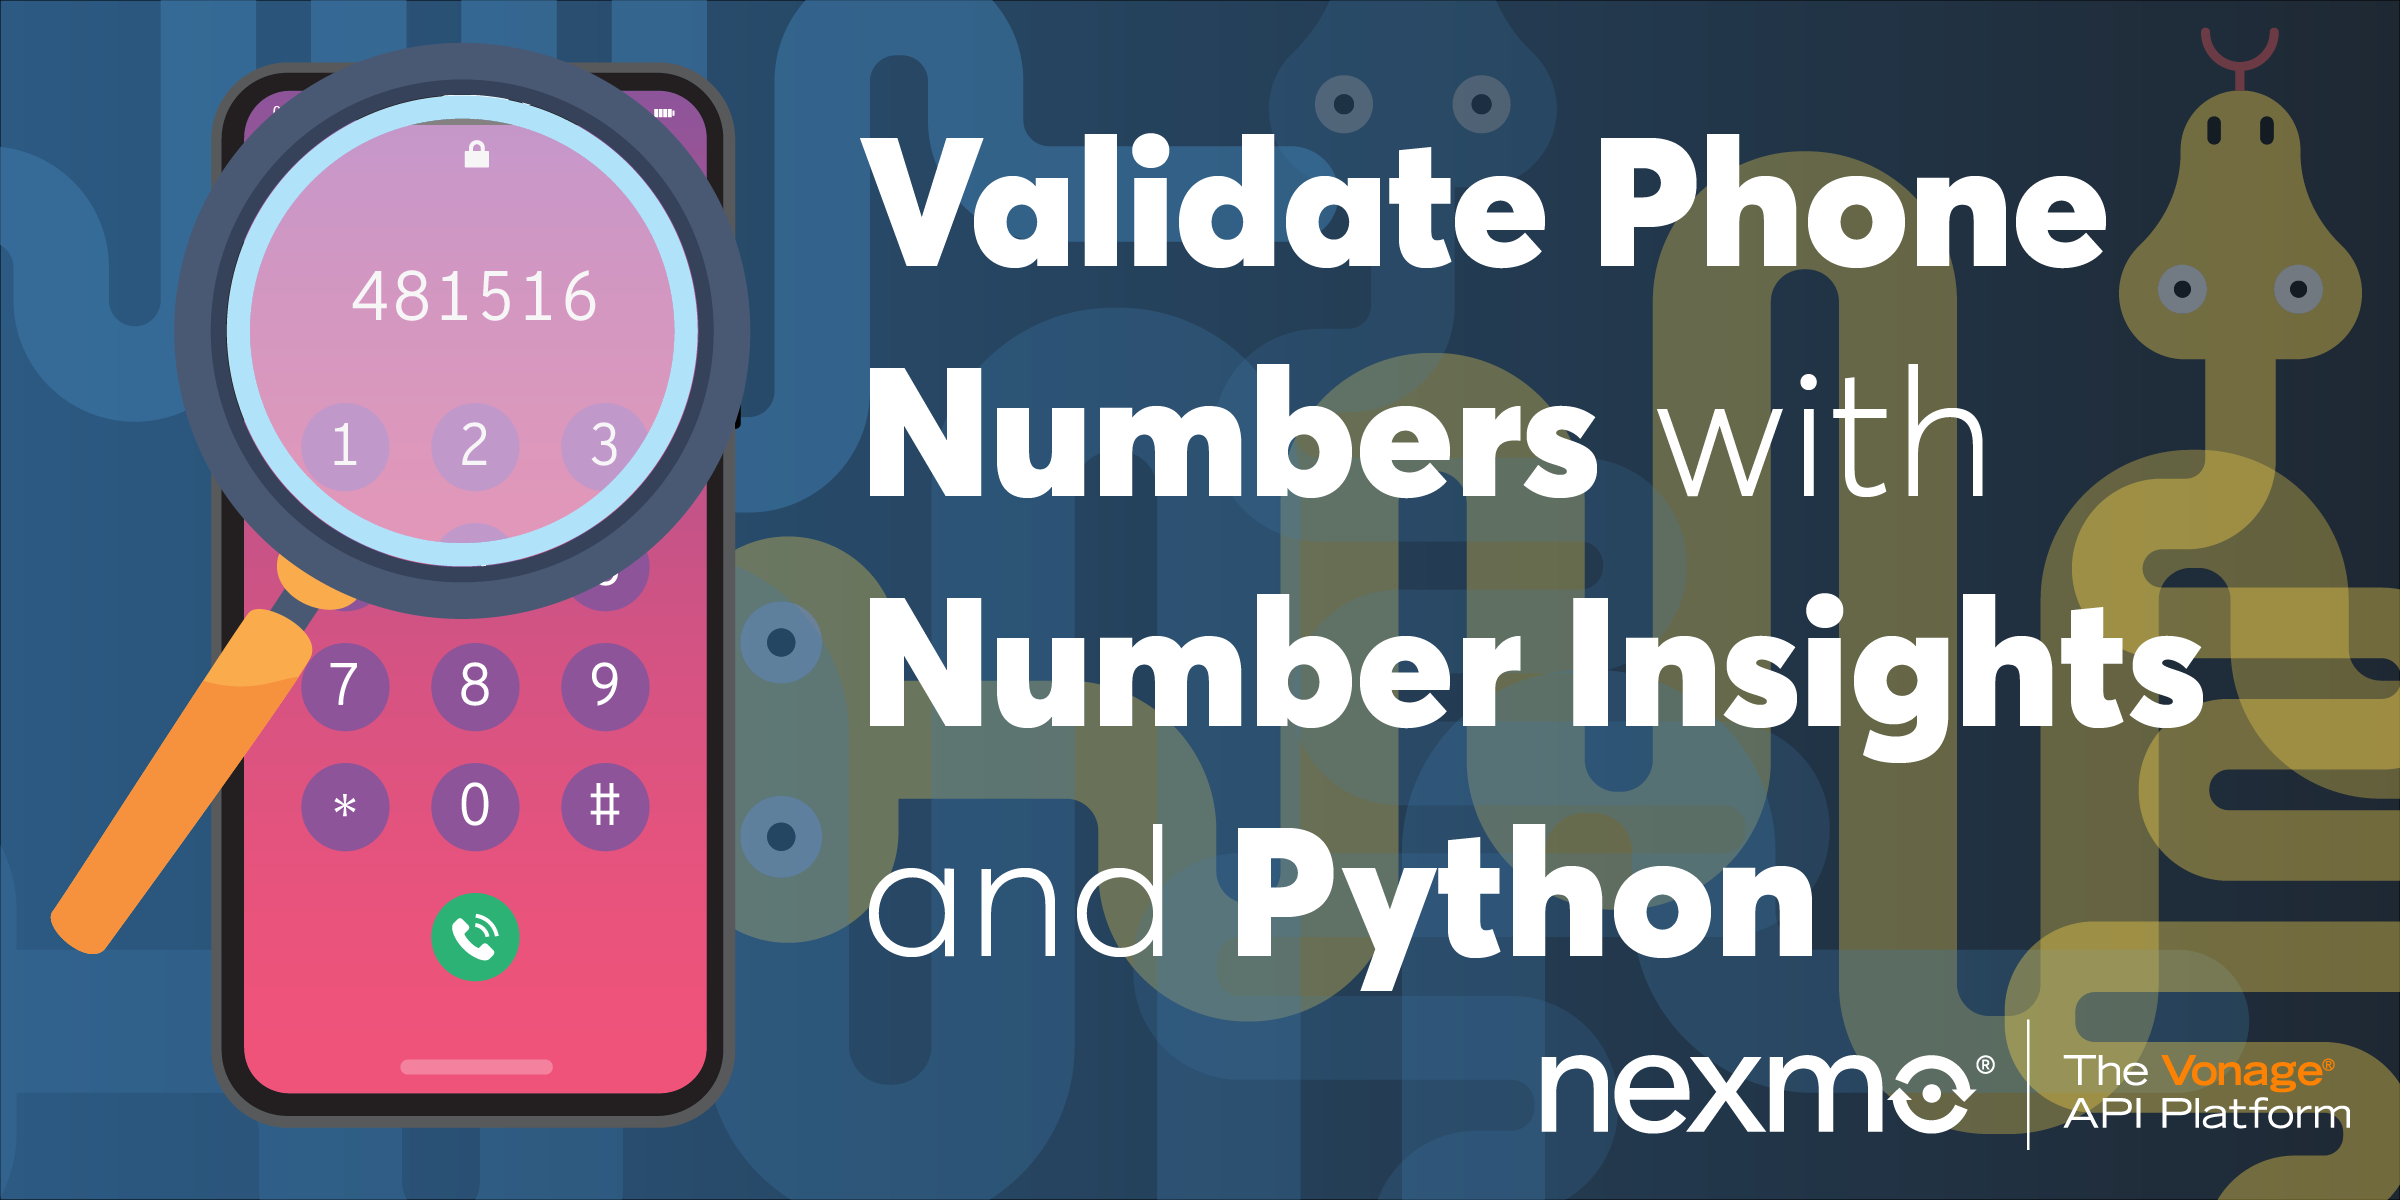 Validate Telephone Numbers with Nexmo Number Insights and Python